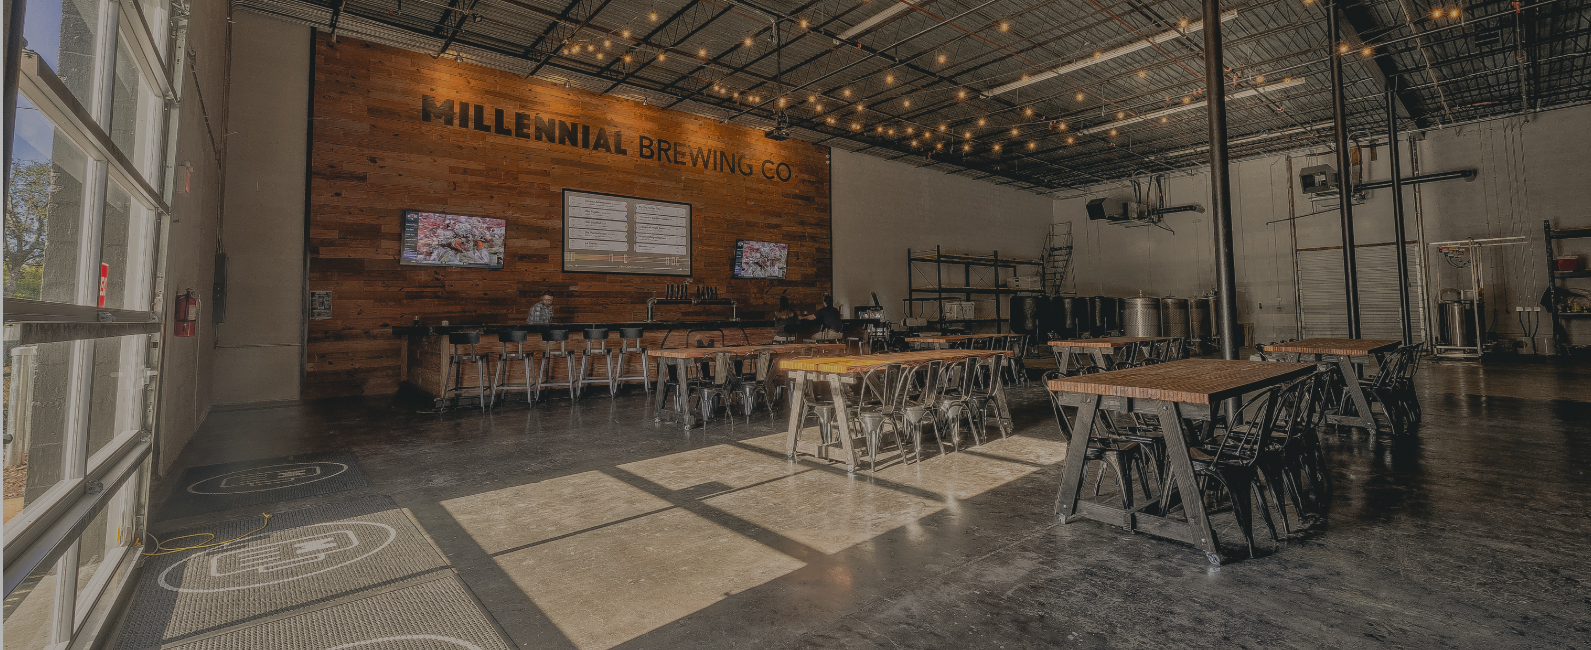 Millennial Brewing Co.